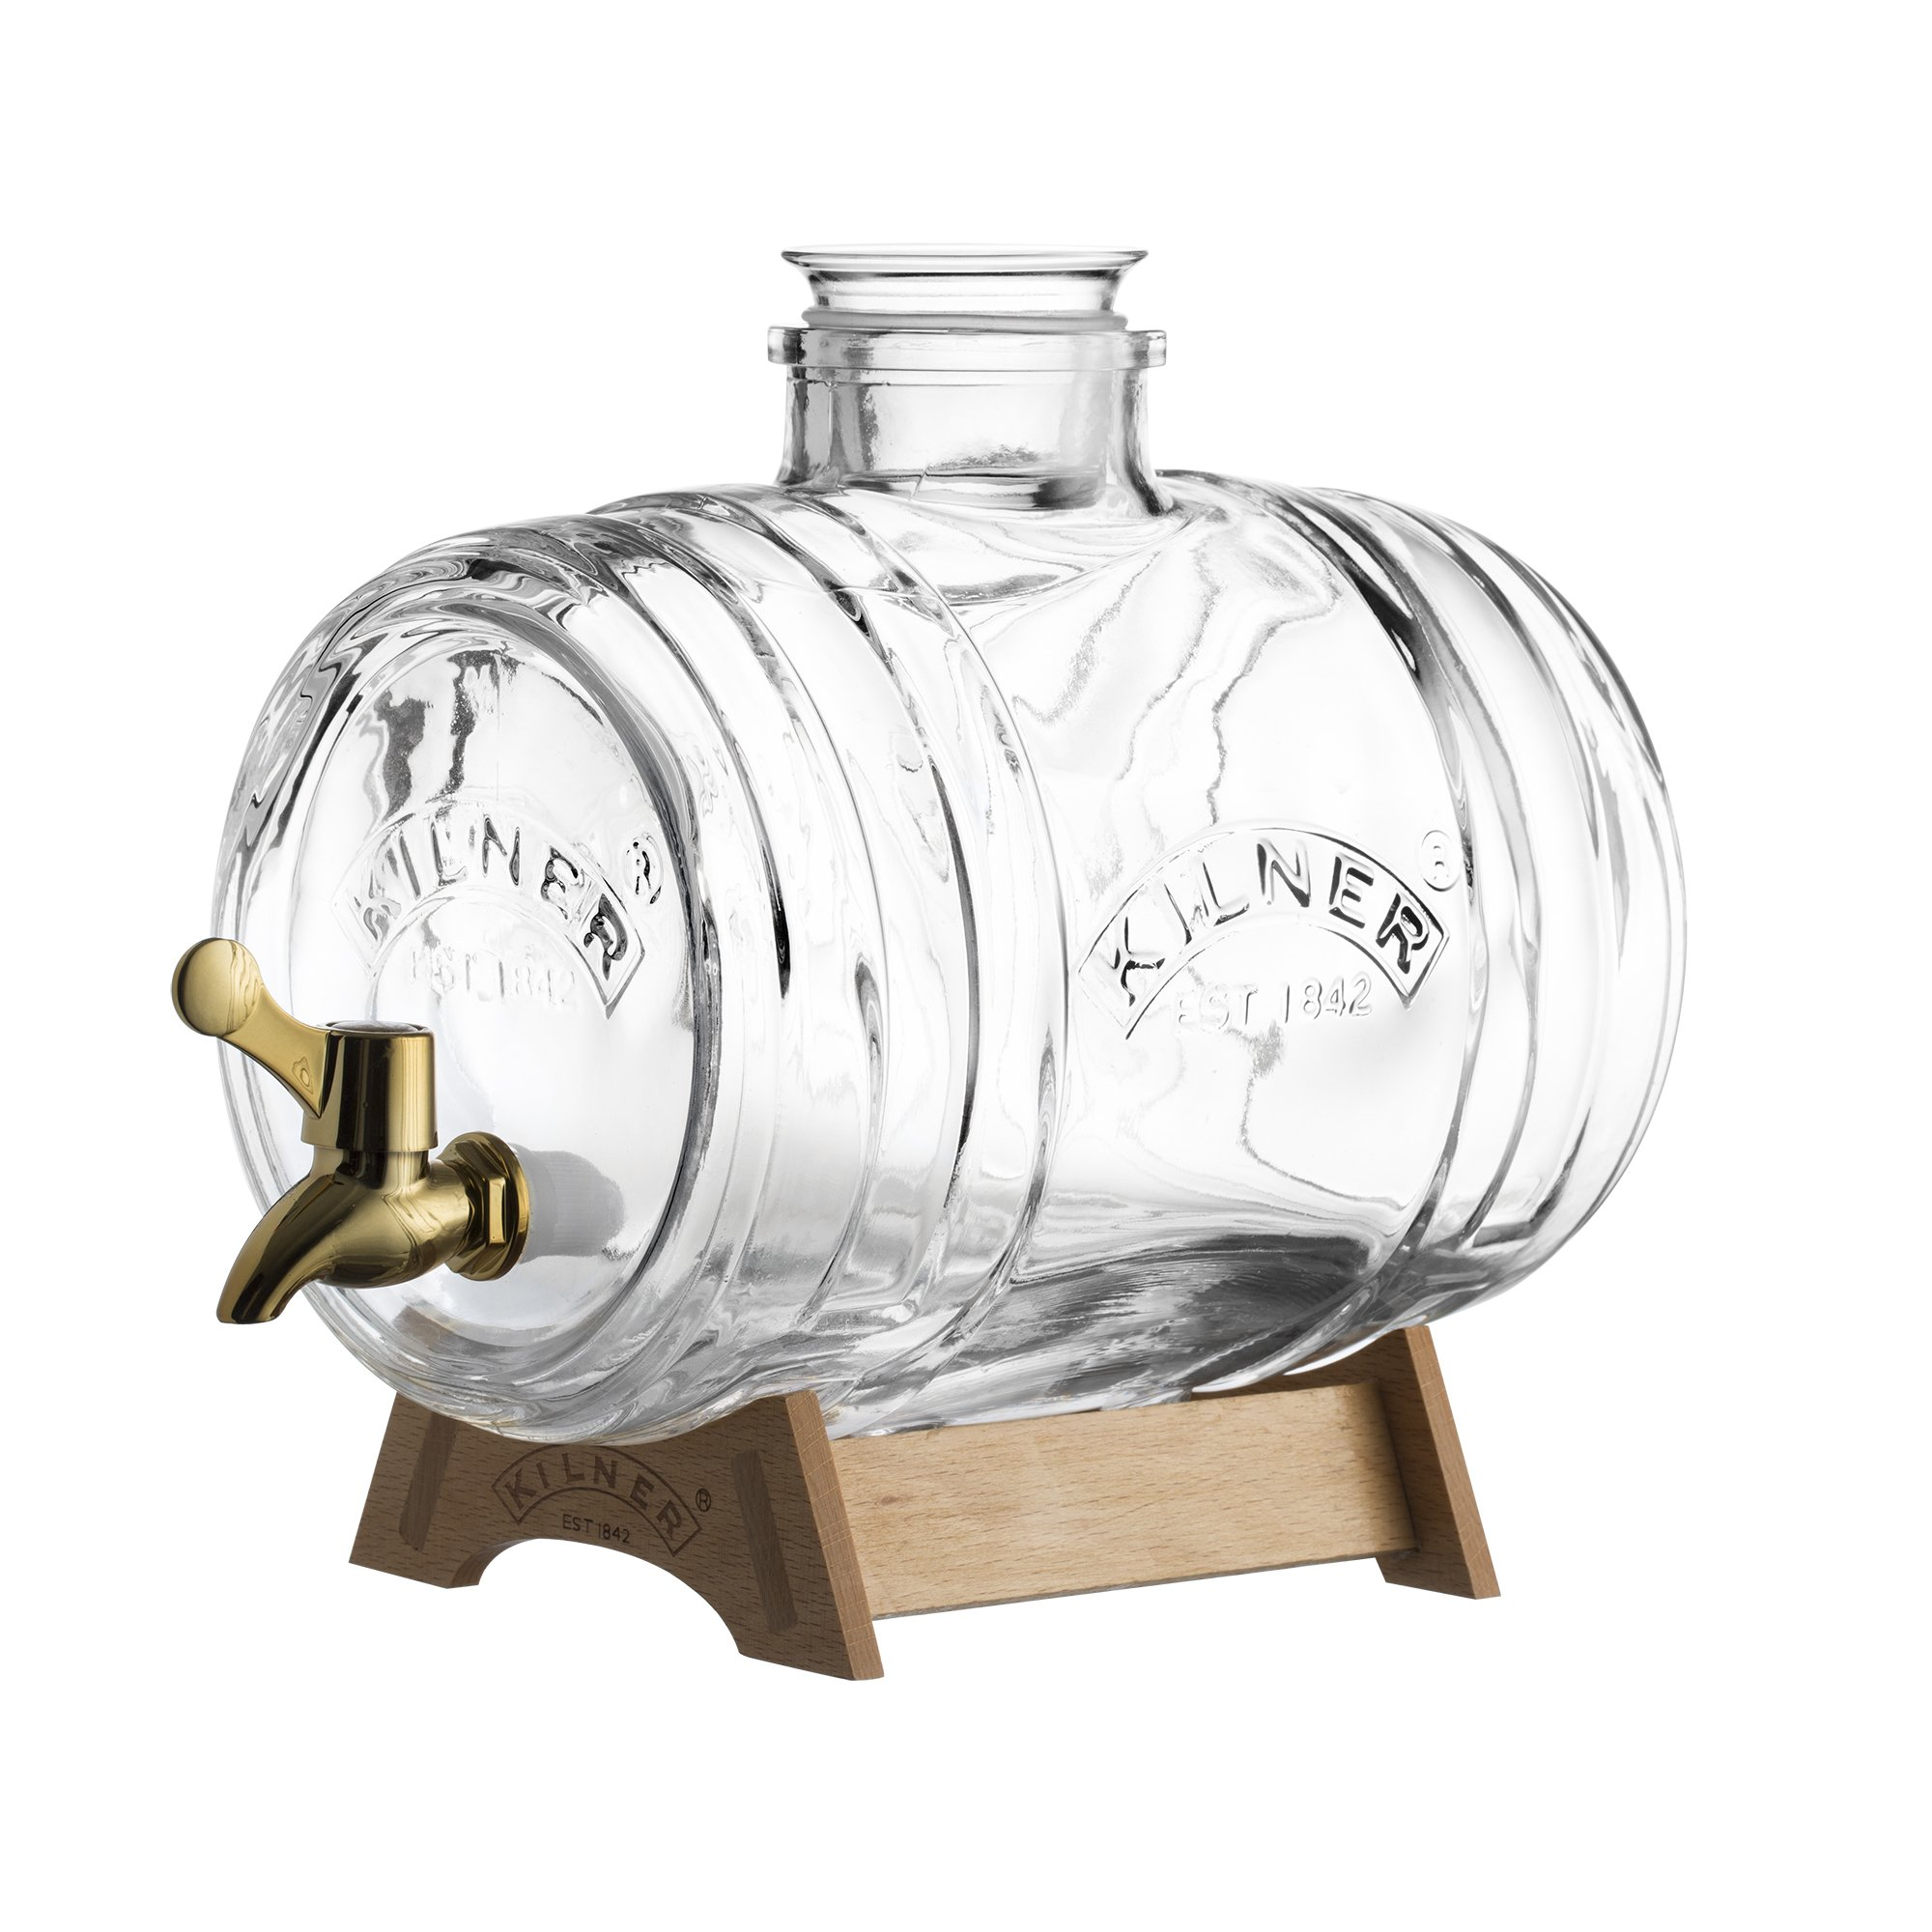 Kilner Glass Barrel Drink Dispenser, 3-1/2-Liters, Vintage Design with Wooden Stand, Glass Stopper and Built-in Jigger, Leakproof Easy-Pour Spigot and Airtight Silicone Seal